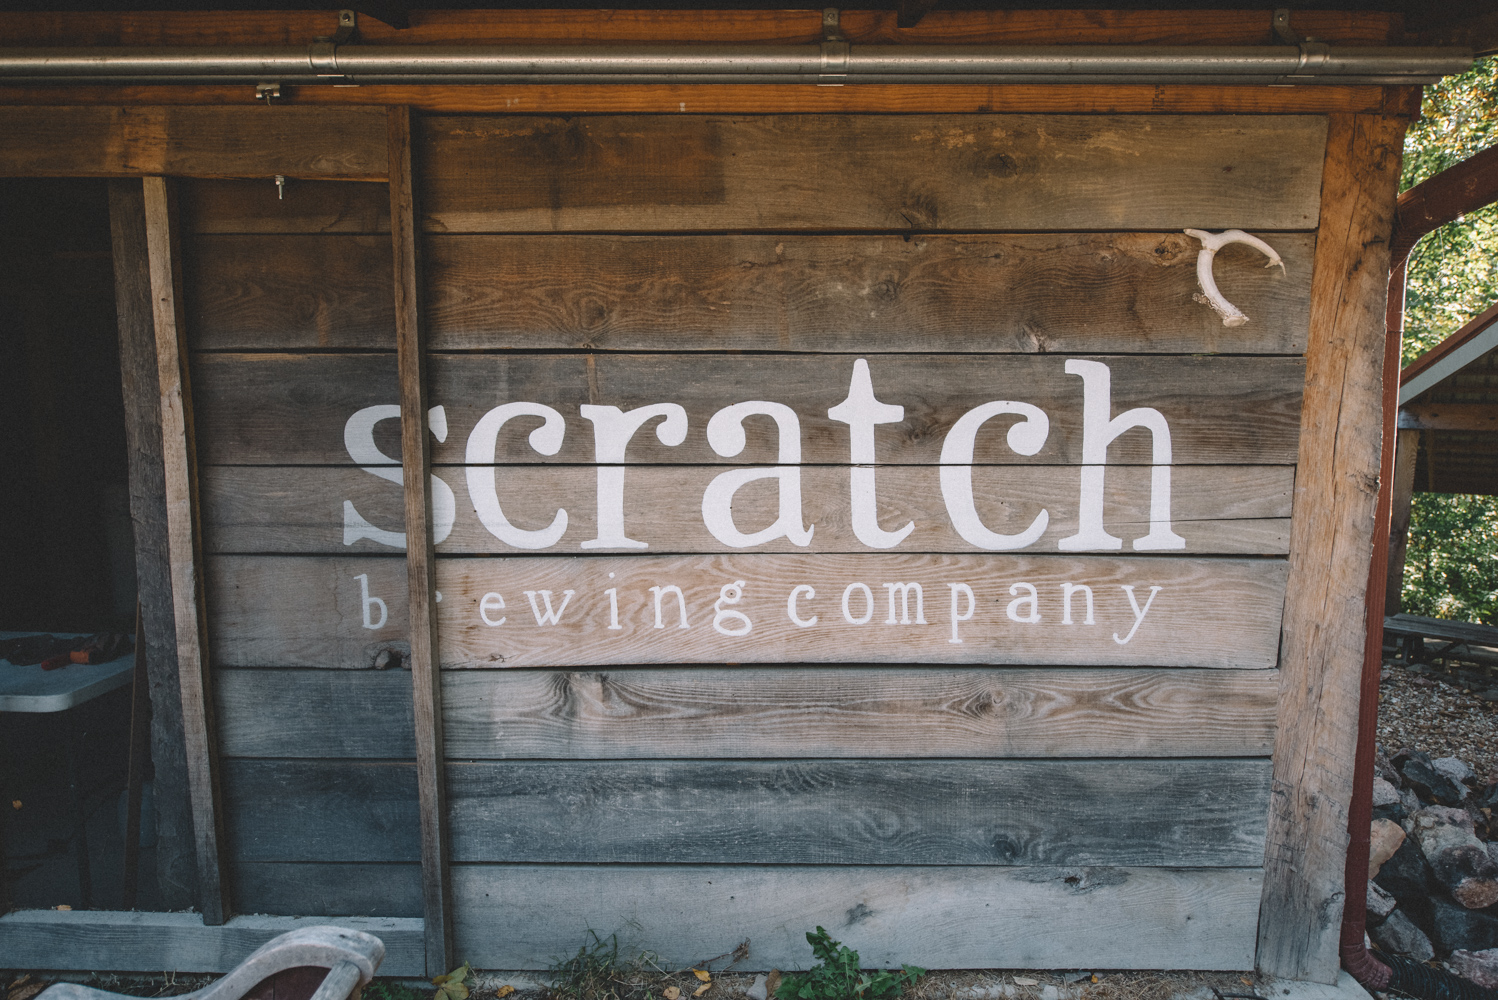 Scratch-Brewing-Co-Carbondale-Ava-Illinois-Good-Beer-Hunting-Matt-Sampson-Photography_1-039.jpg